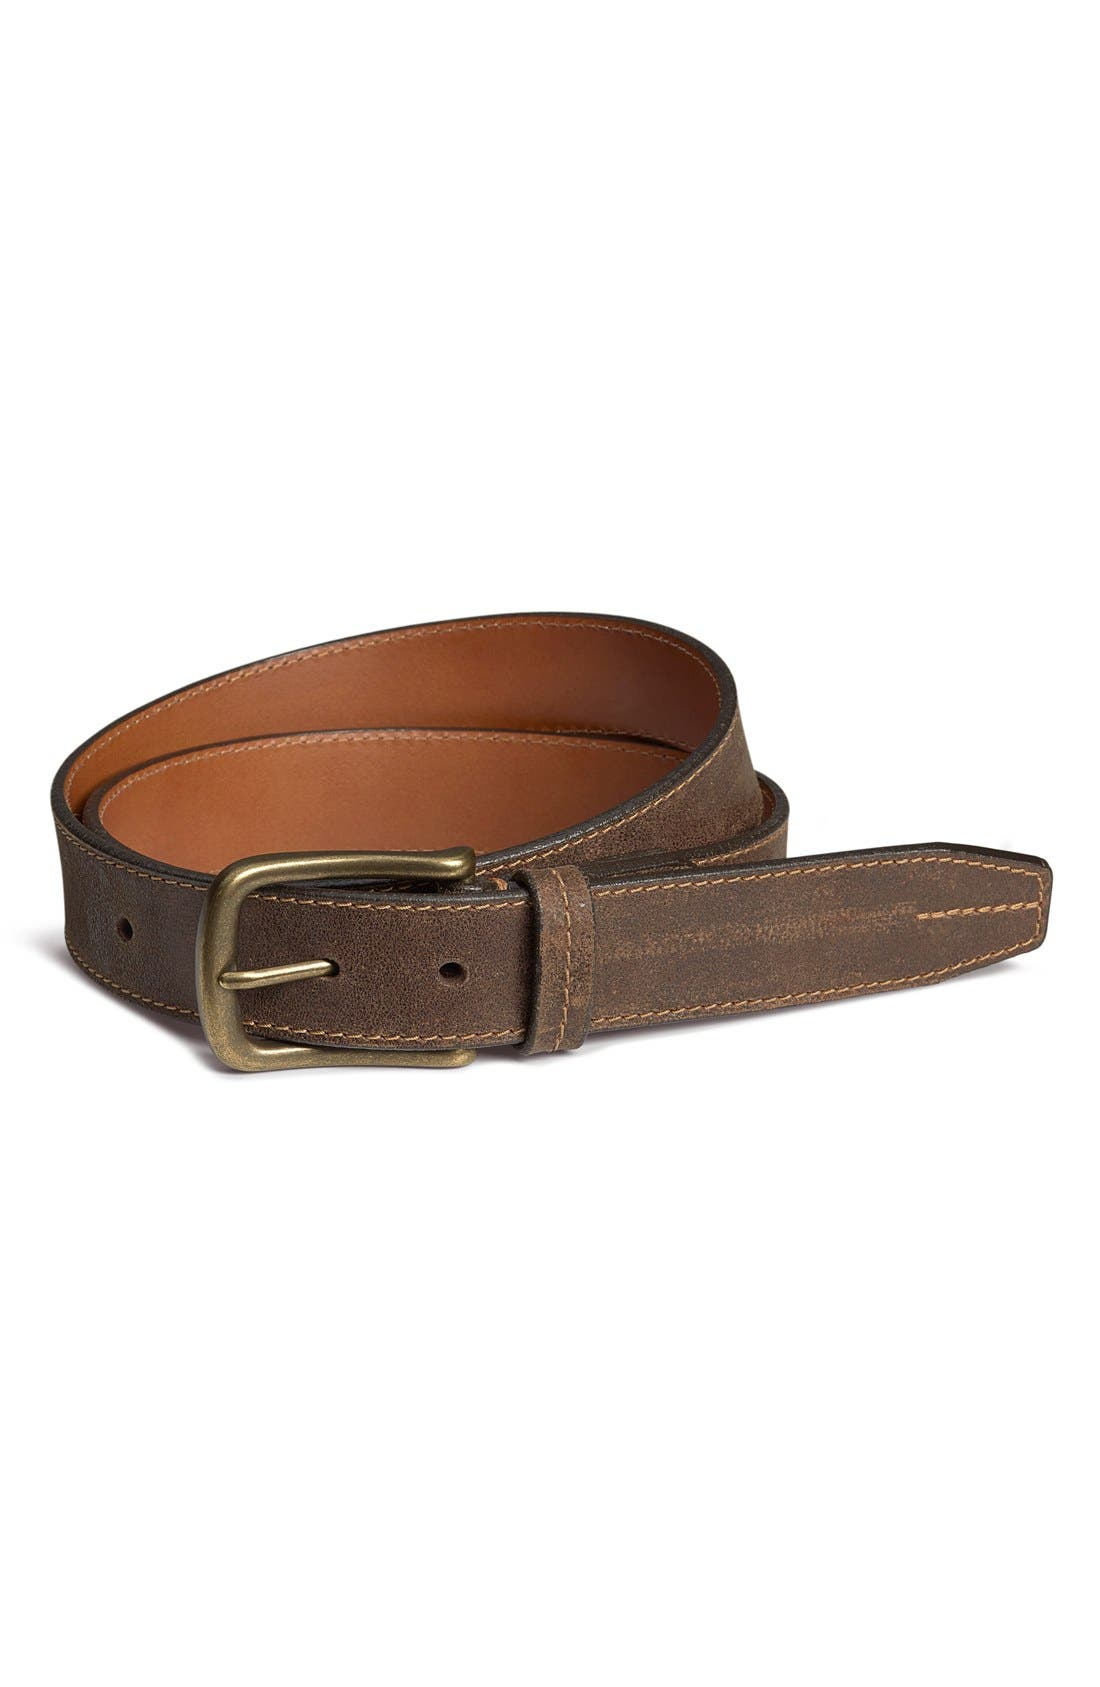 Alternate Image 1 Selected - Trask 'Logan' Bison Leather Belt